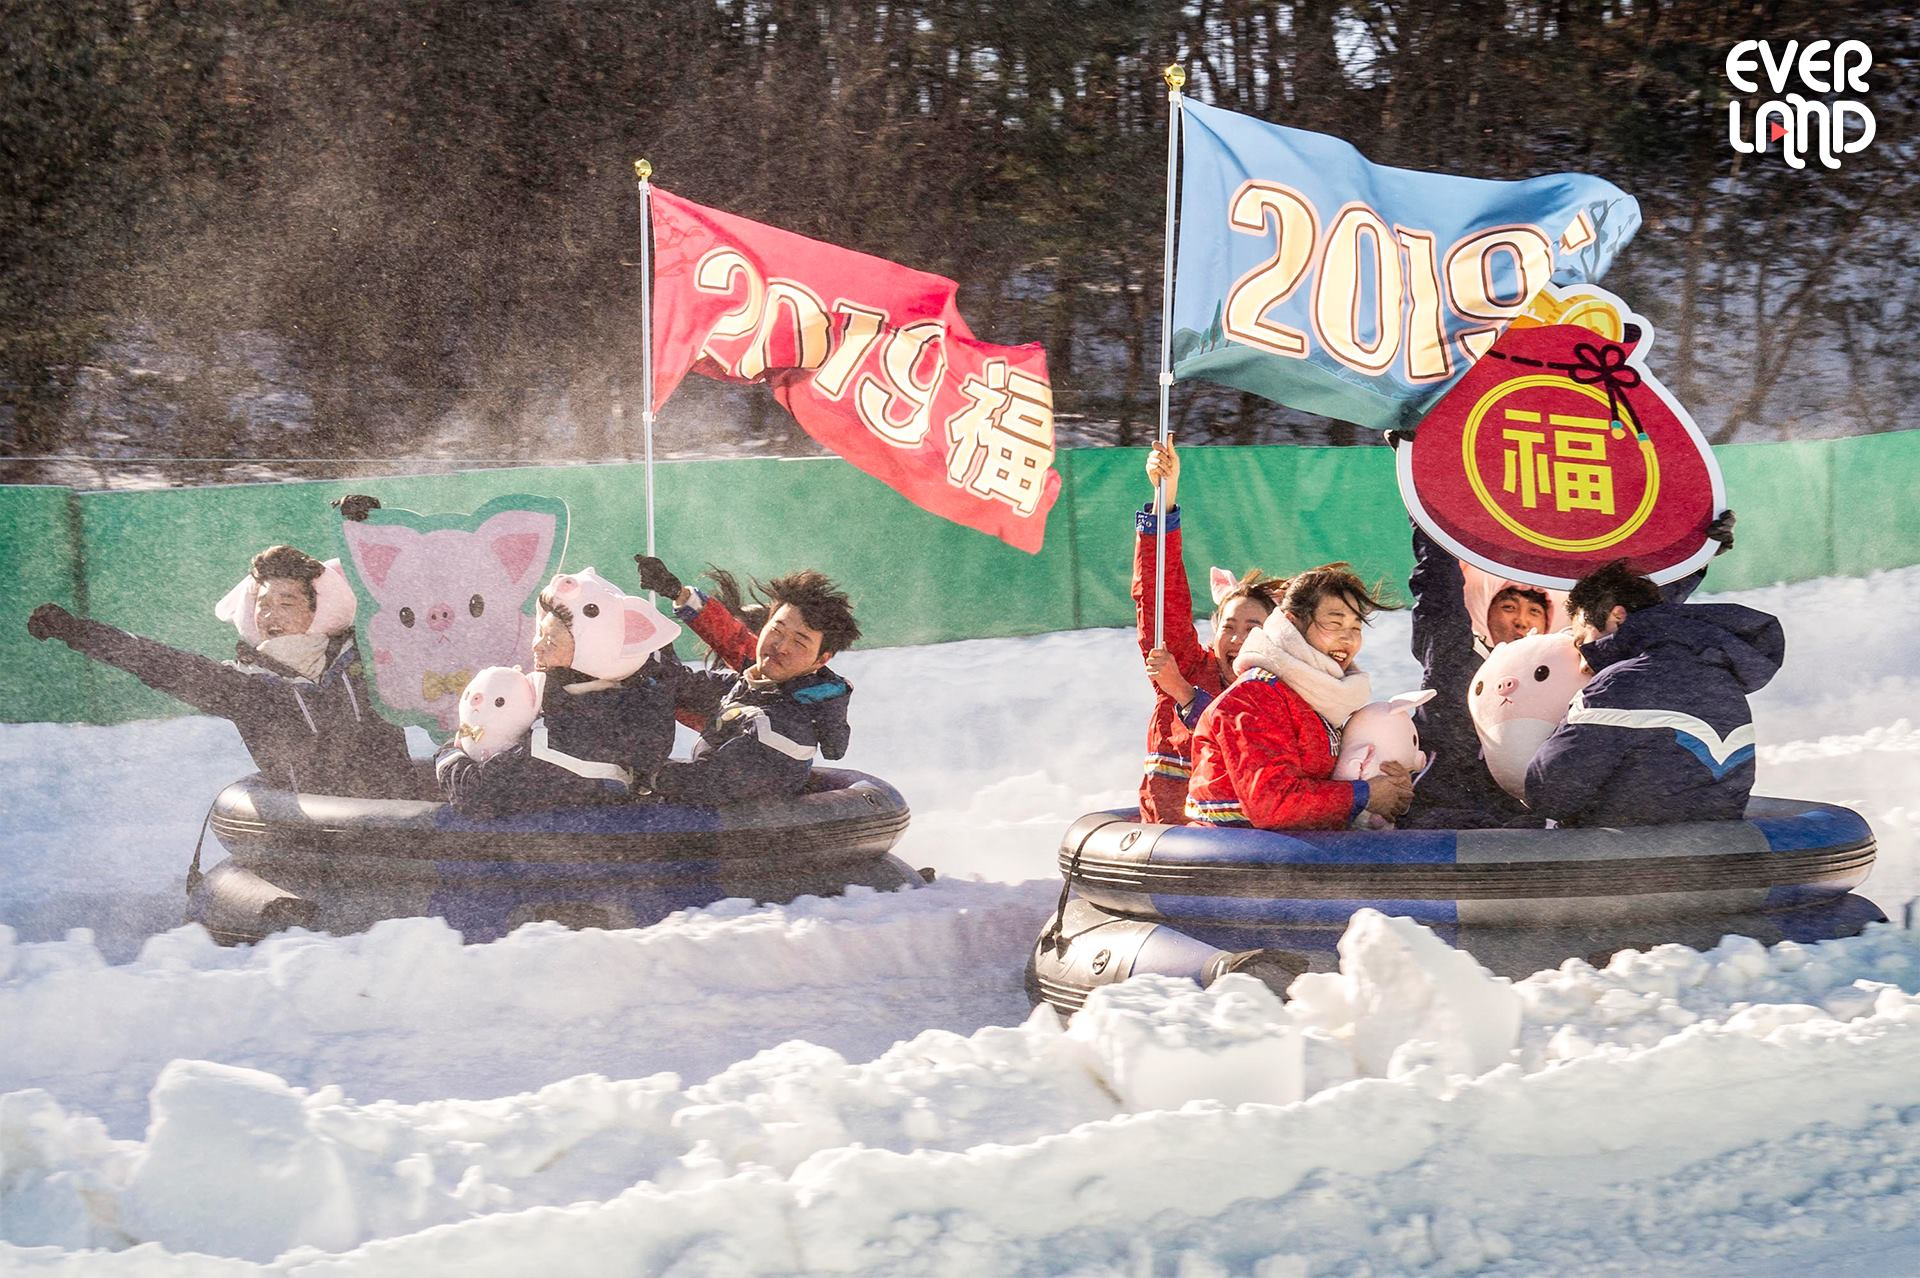 Snow Buster — winter attraction at Everland theme park in Korea. Image credit:  Everland  Facebook page